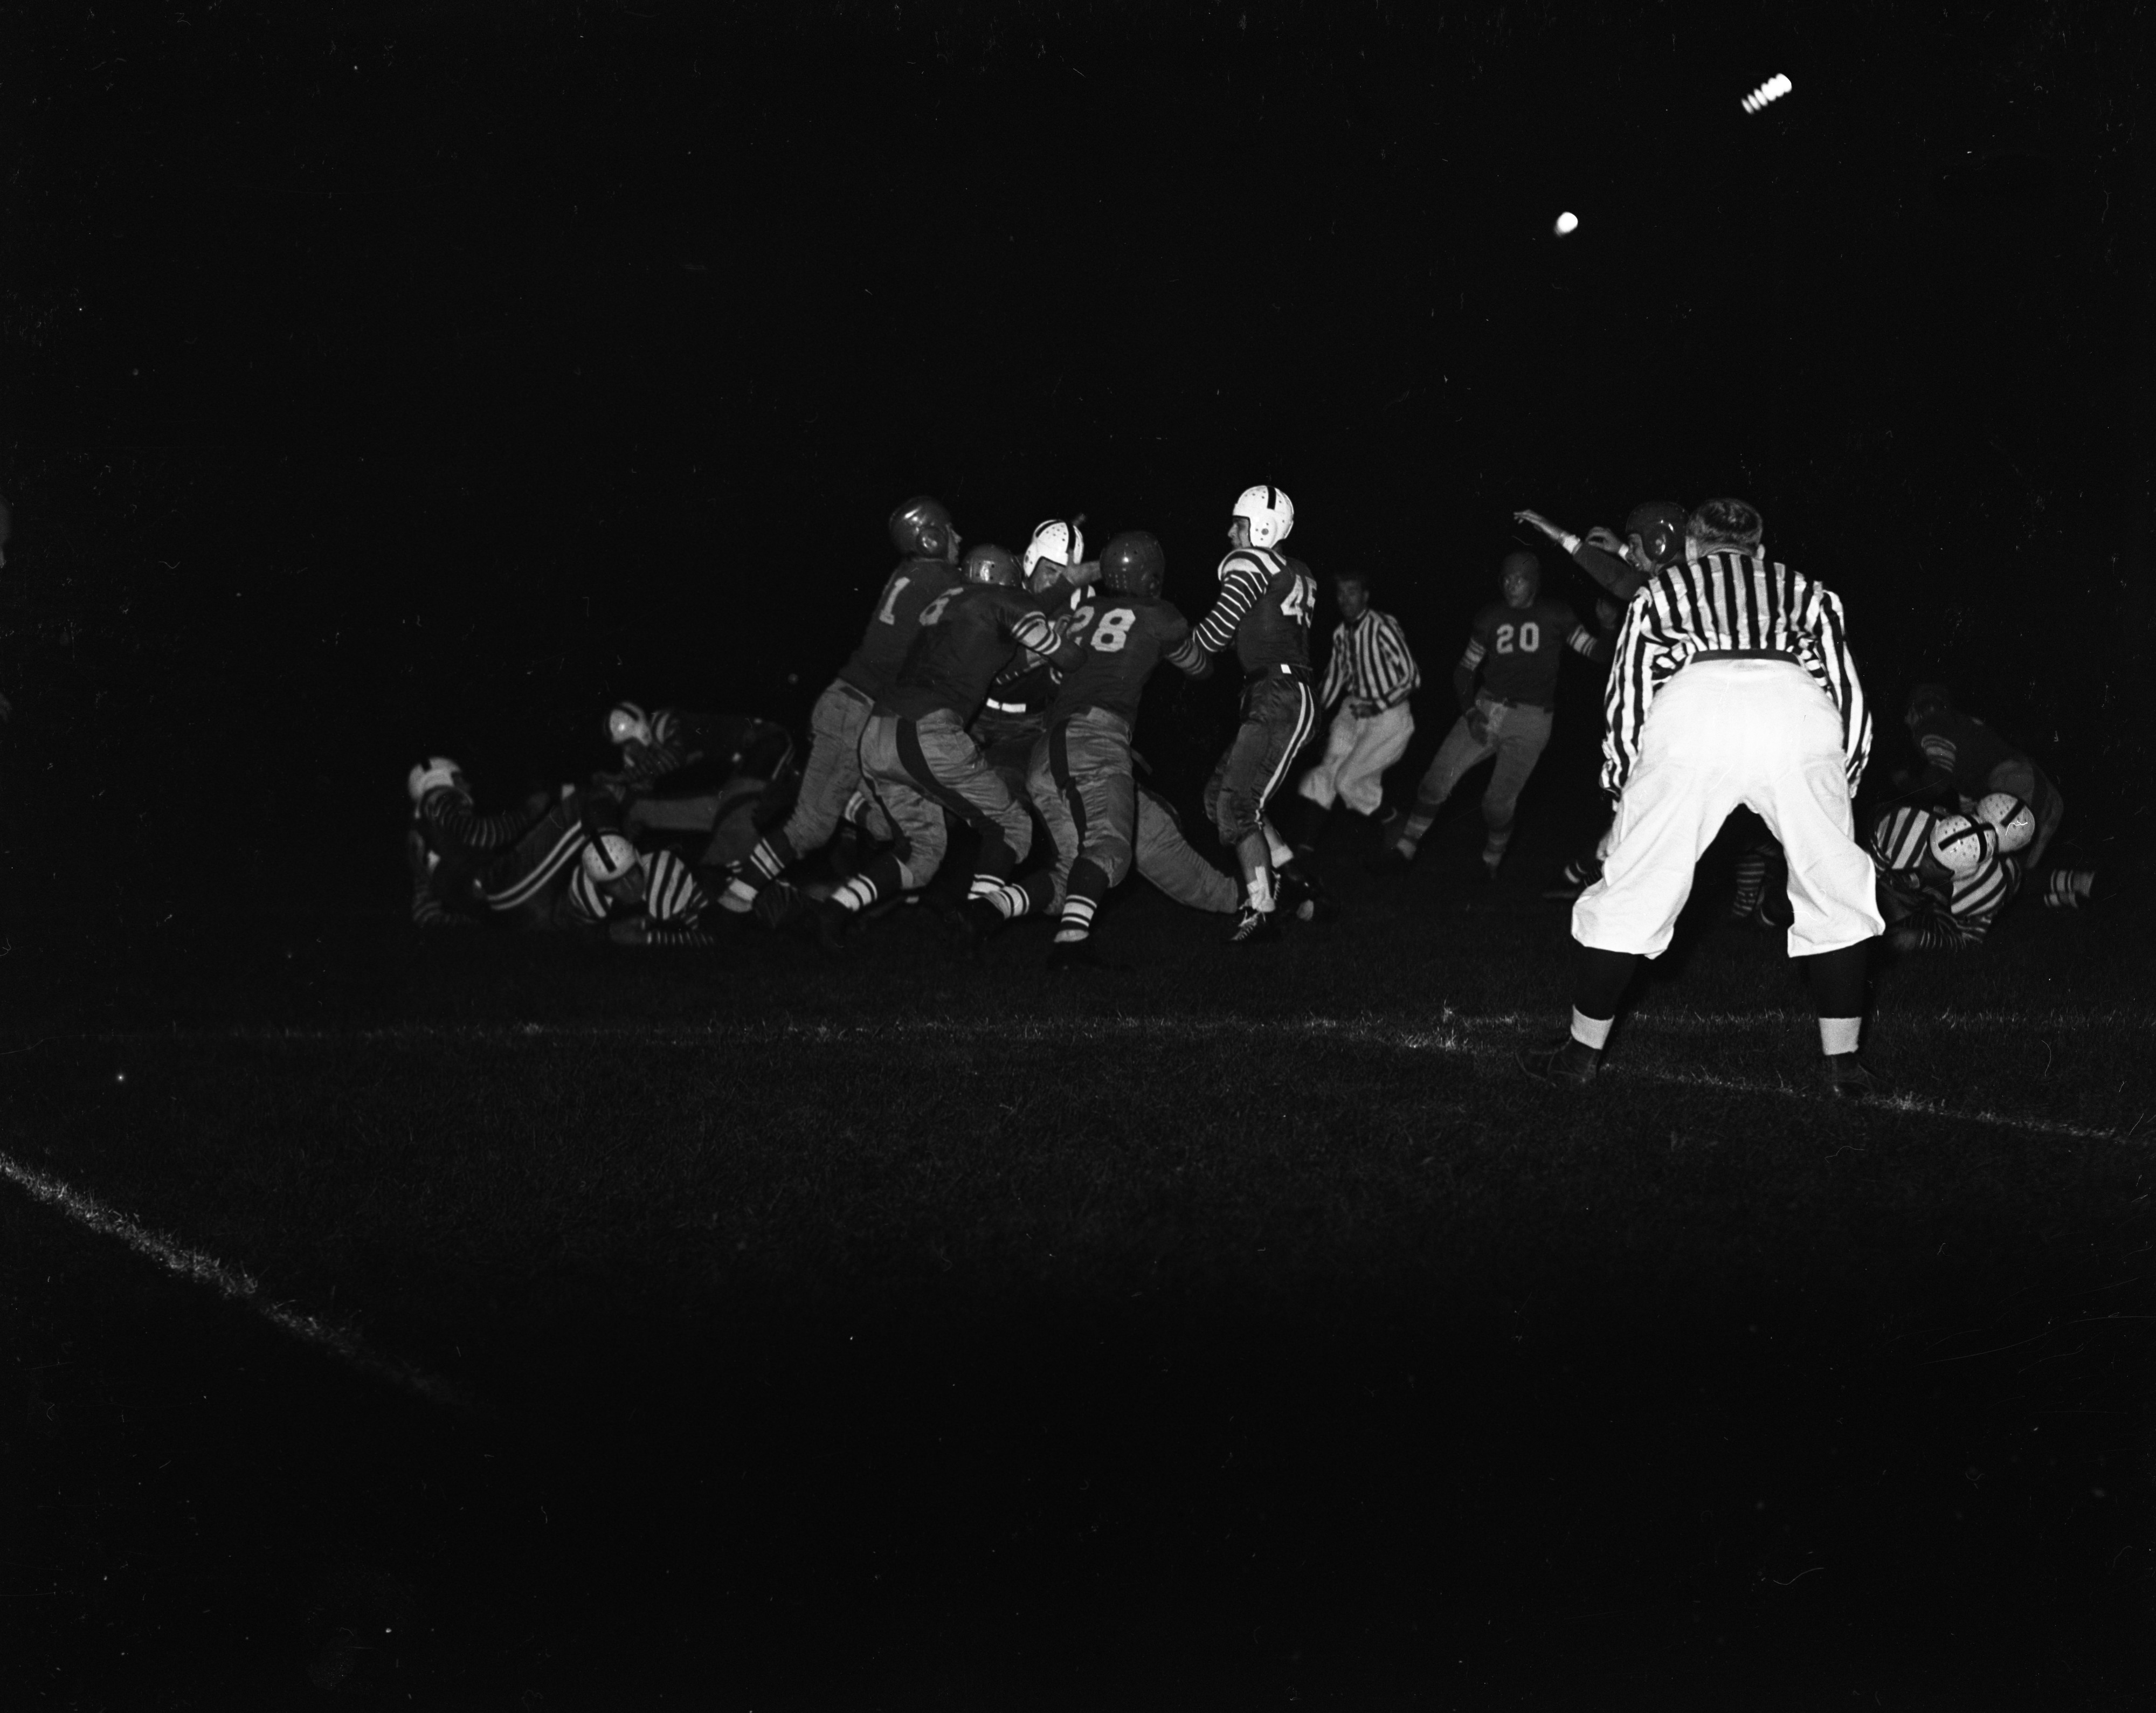 Football: Ann Arbor High School vs. Monroe at Night, September 1939 image